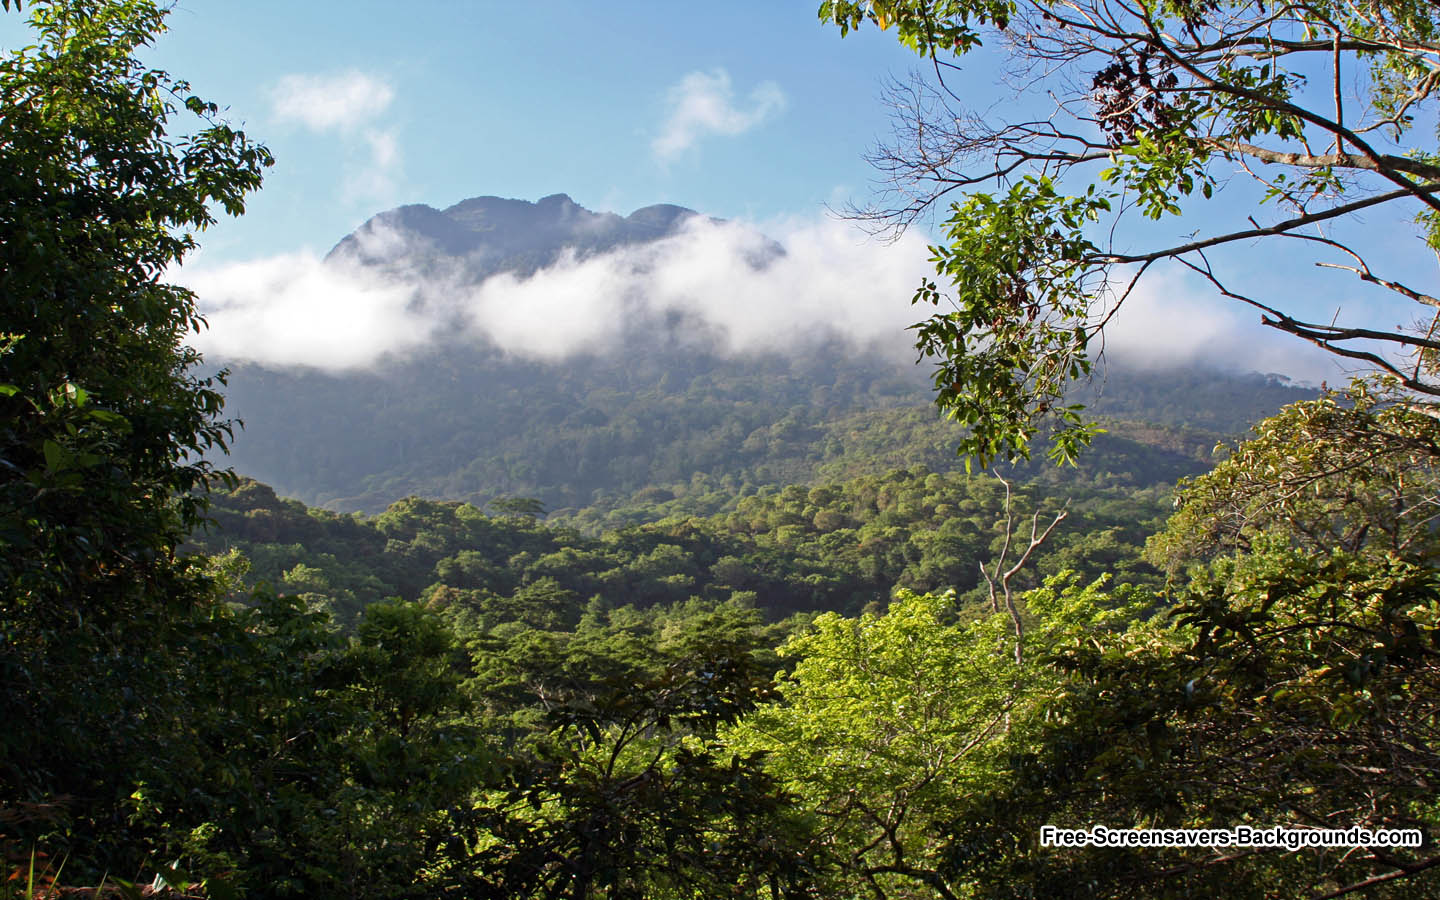 Udzungwa Mountains Wallpaper   Screensavers and Backgrounds 1440x900